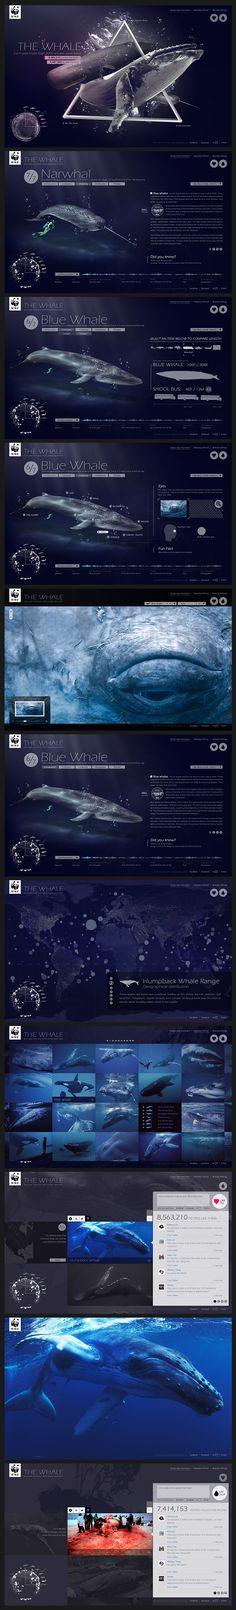 WWF - The Whale | #webdesign #it #web #design #layout #userinterface #website #webdesign <<< repinned by an #advertising #coffee #agency from #Hamburg / #Germany - www.BlickeDeeler.de | Follow us on www.facebook.com/BlickeDeeler